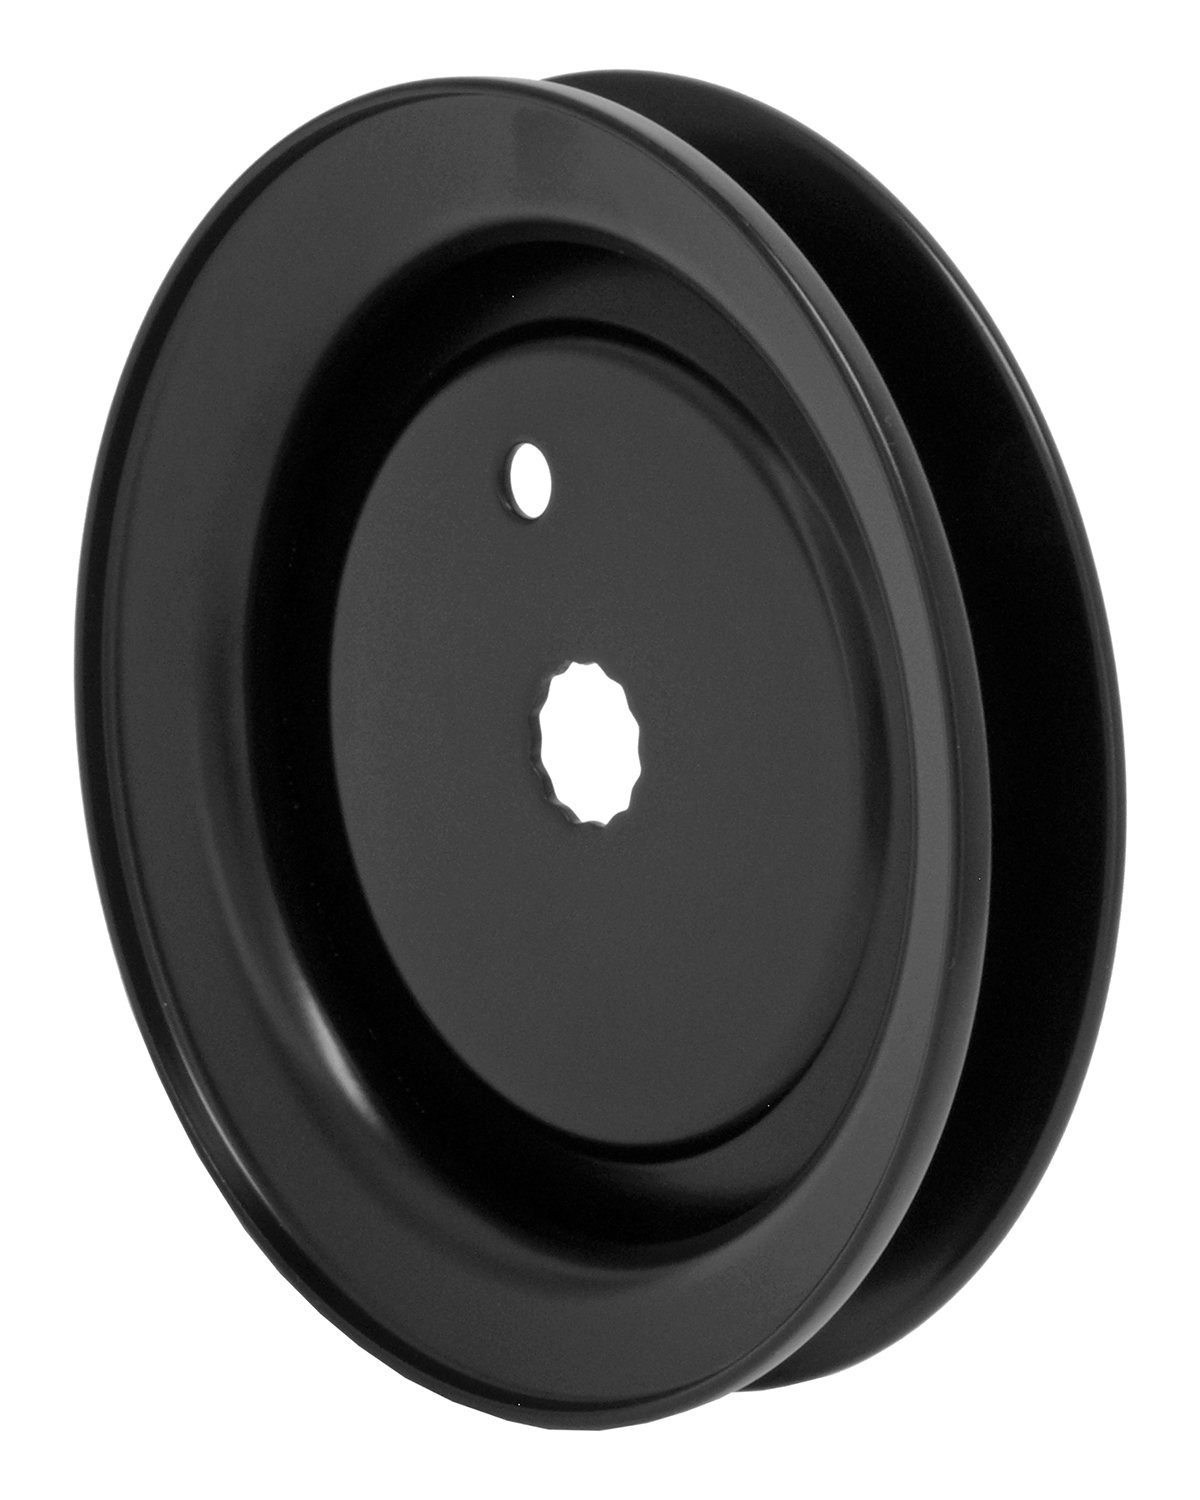 5.63 in Spindle Pulley for Cub Cadet